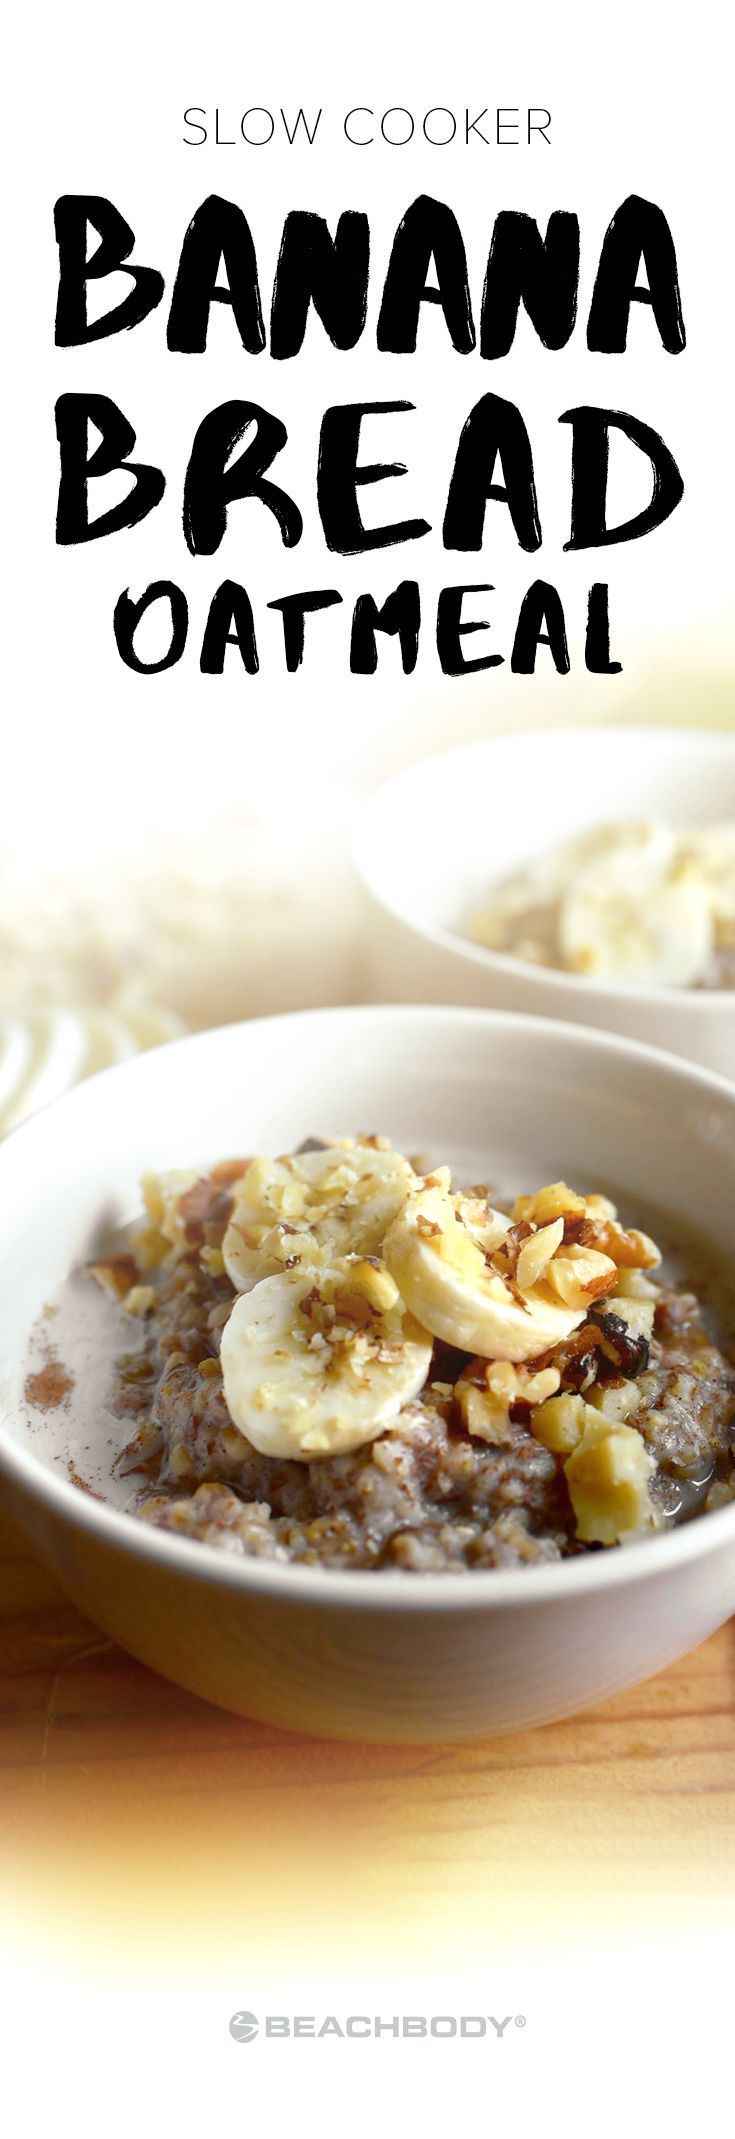 "With this Slow Cooker Banana Bread Oatmeal, breakfast can taste like dessert while still being a wholesome and nutritious way to fuel your day. It's got all of the flavor of a luscious slice of banana bread, with cinnamon, nutmeg, and three whole bananas give it authentic ""baked-in"" taste. // healthy recipes // breakfast recipes // oatmeal // crock pot // easy breakfasts // Beachbody // BeachbodyBlog.com"